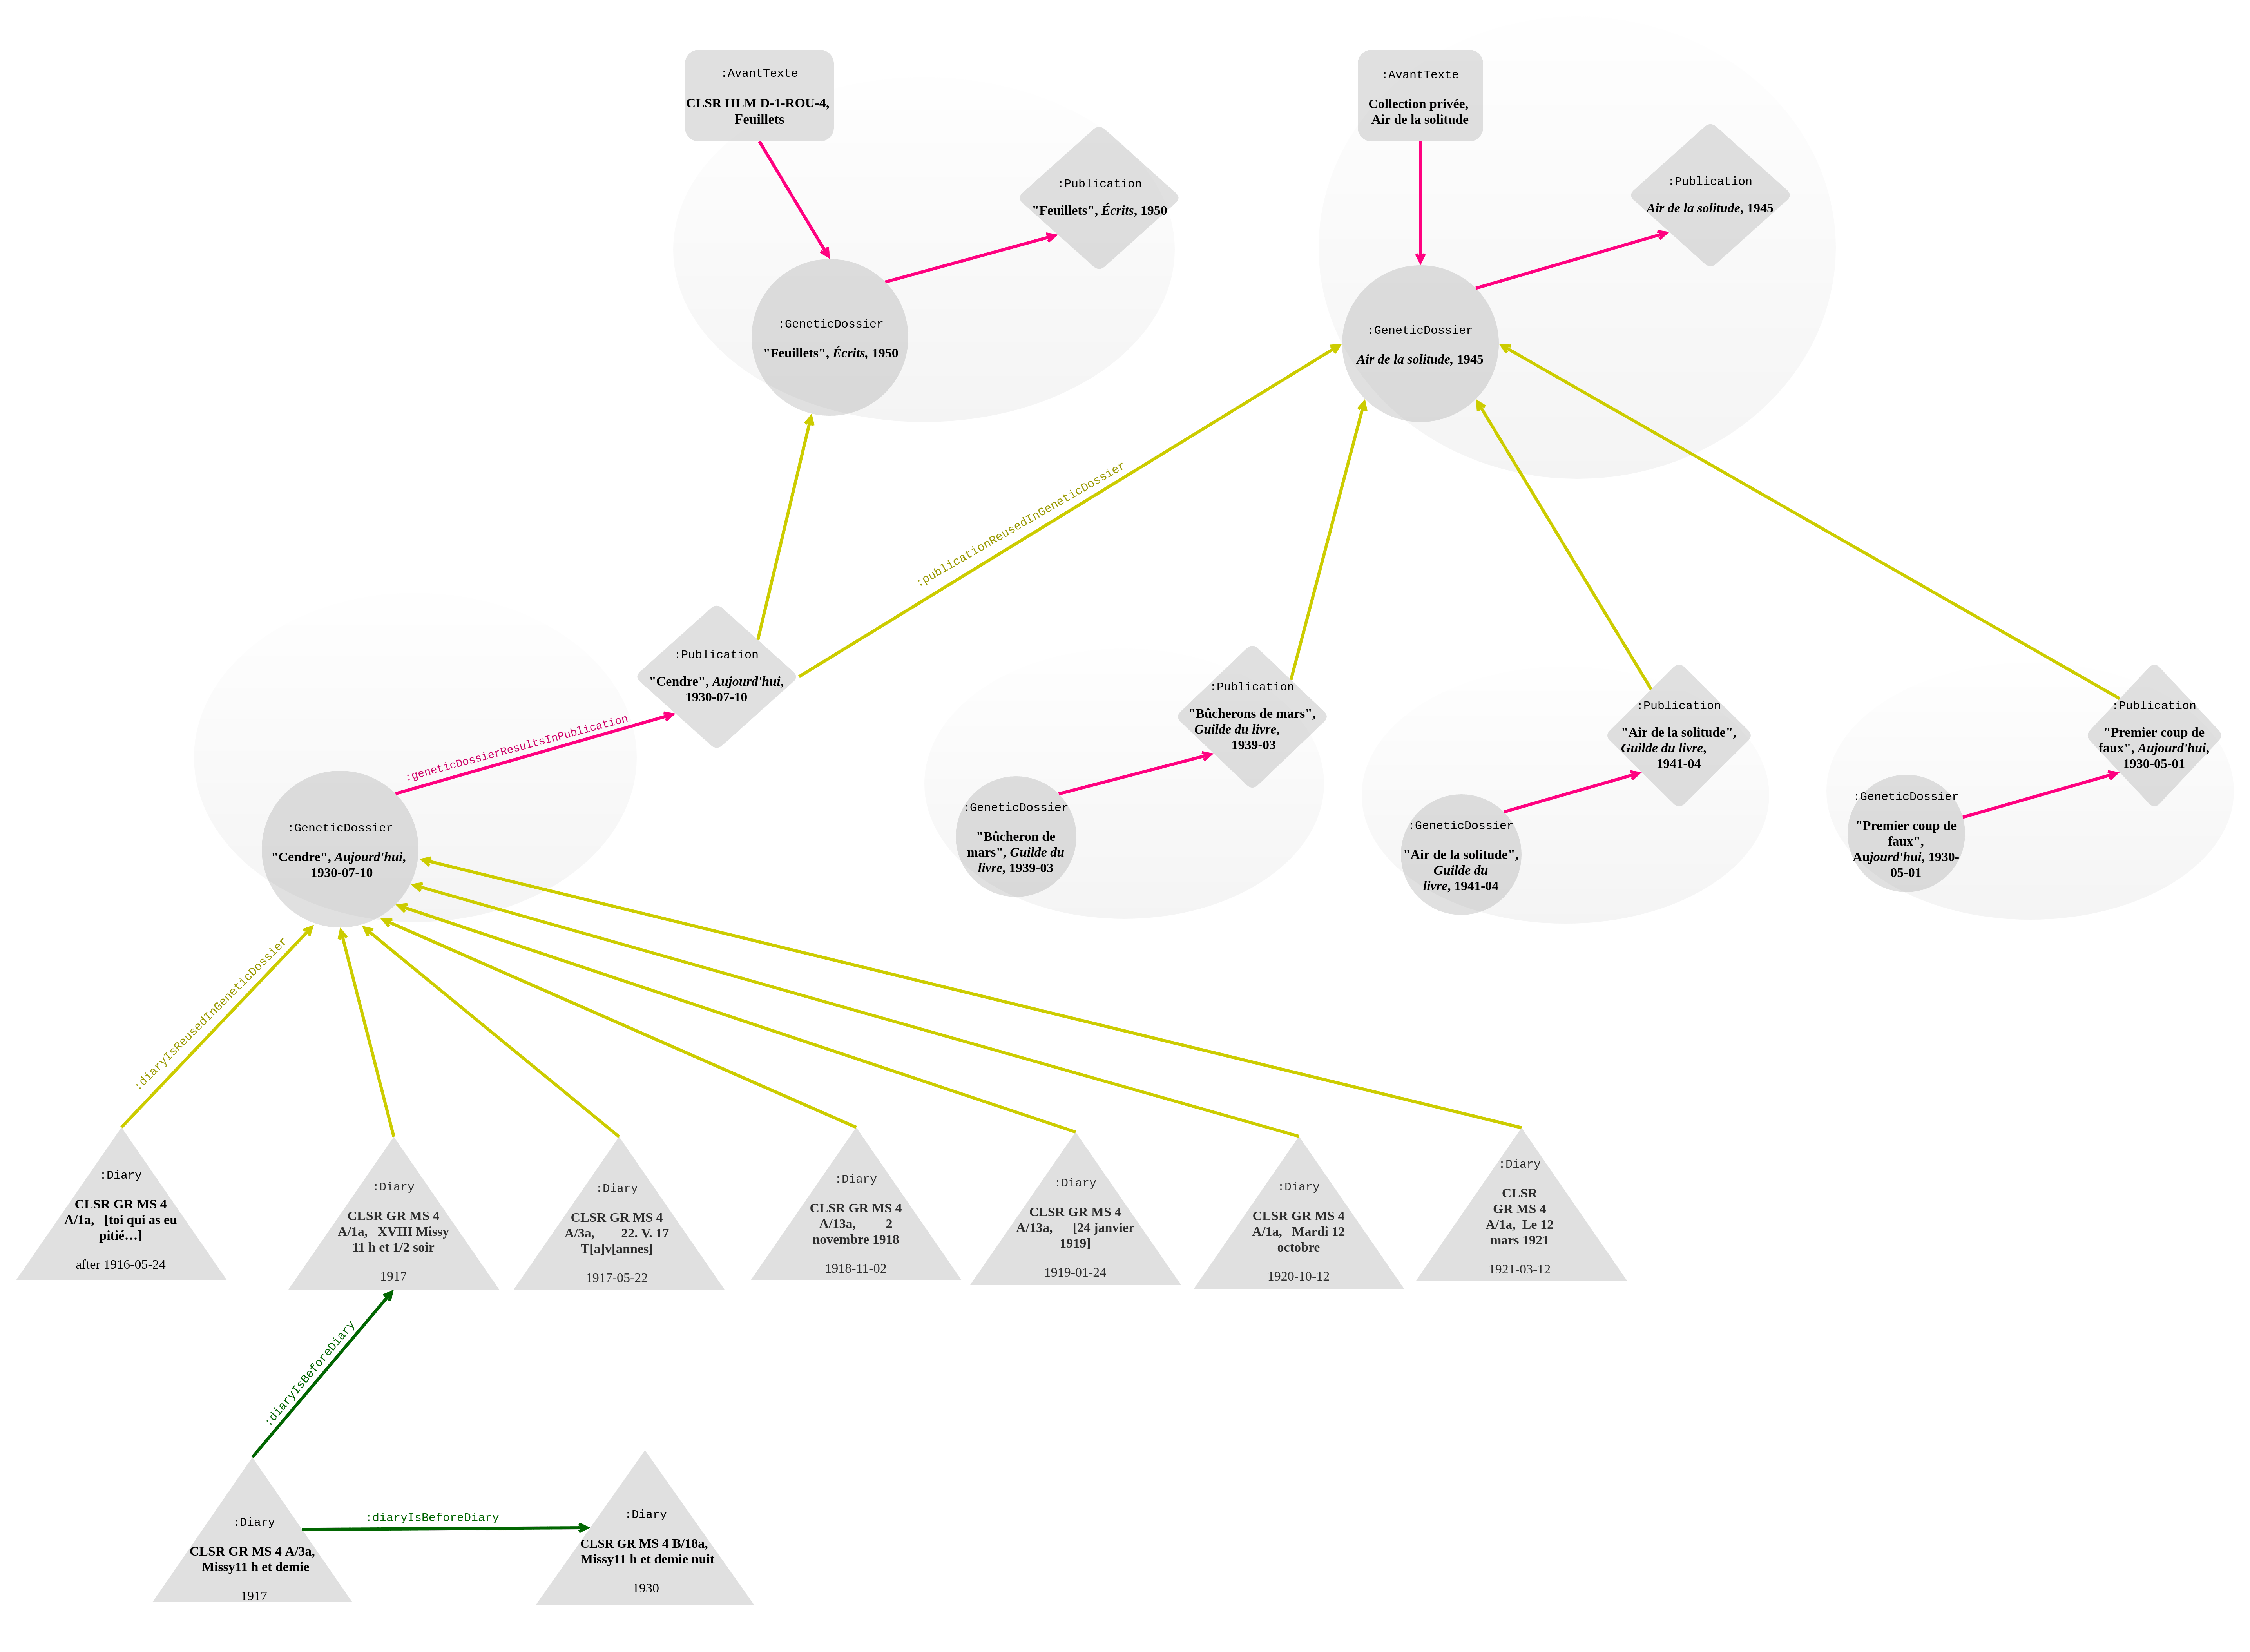 """Genetic network of """"Cendre"""", Aujourd'hui, 10 July 1930 (§1-§7), including its reuse in Feuillets and Air de la solitude (§16-19). Links to (:avantTextIsPartOfGeneticDossier) and from the genetic dossier are in pink; the diary rewriting in green; sub-properties of :isReusedIn in yellow. The labels are not repeated on all of the edges. The date is displayed for each diary entry to maintain chronological order."""